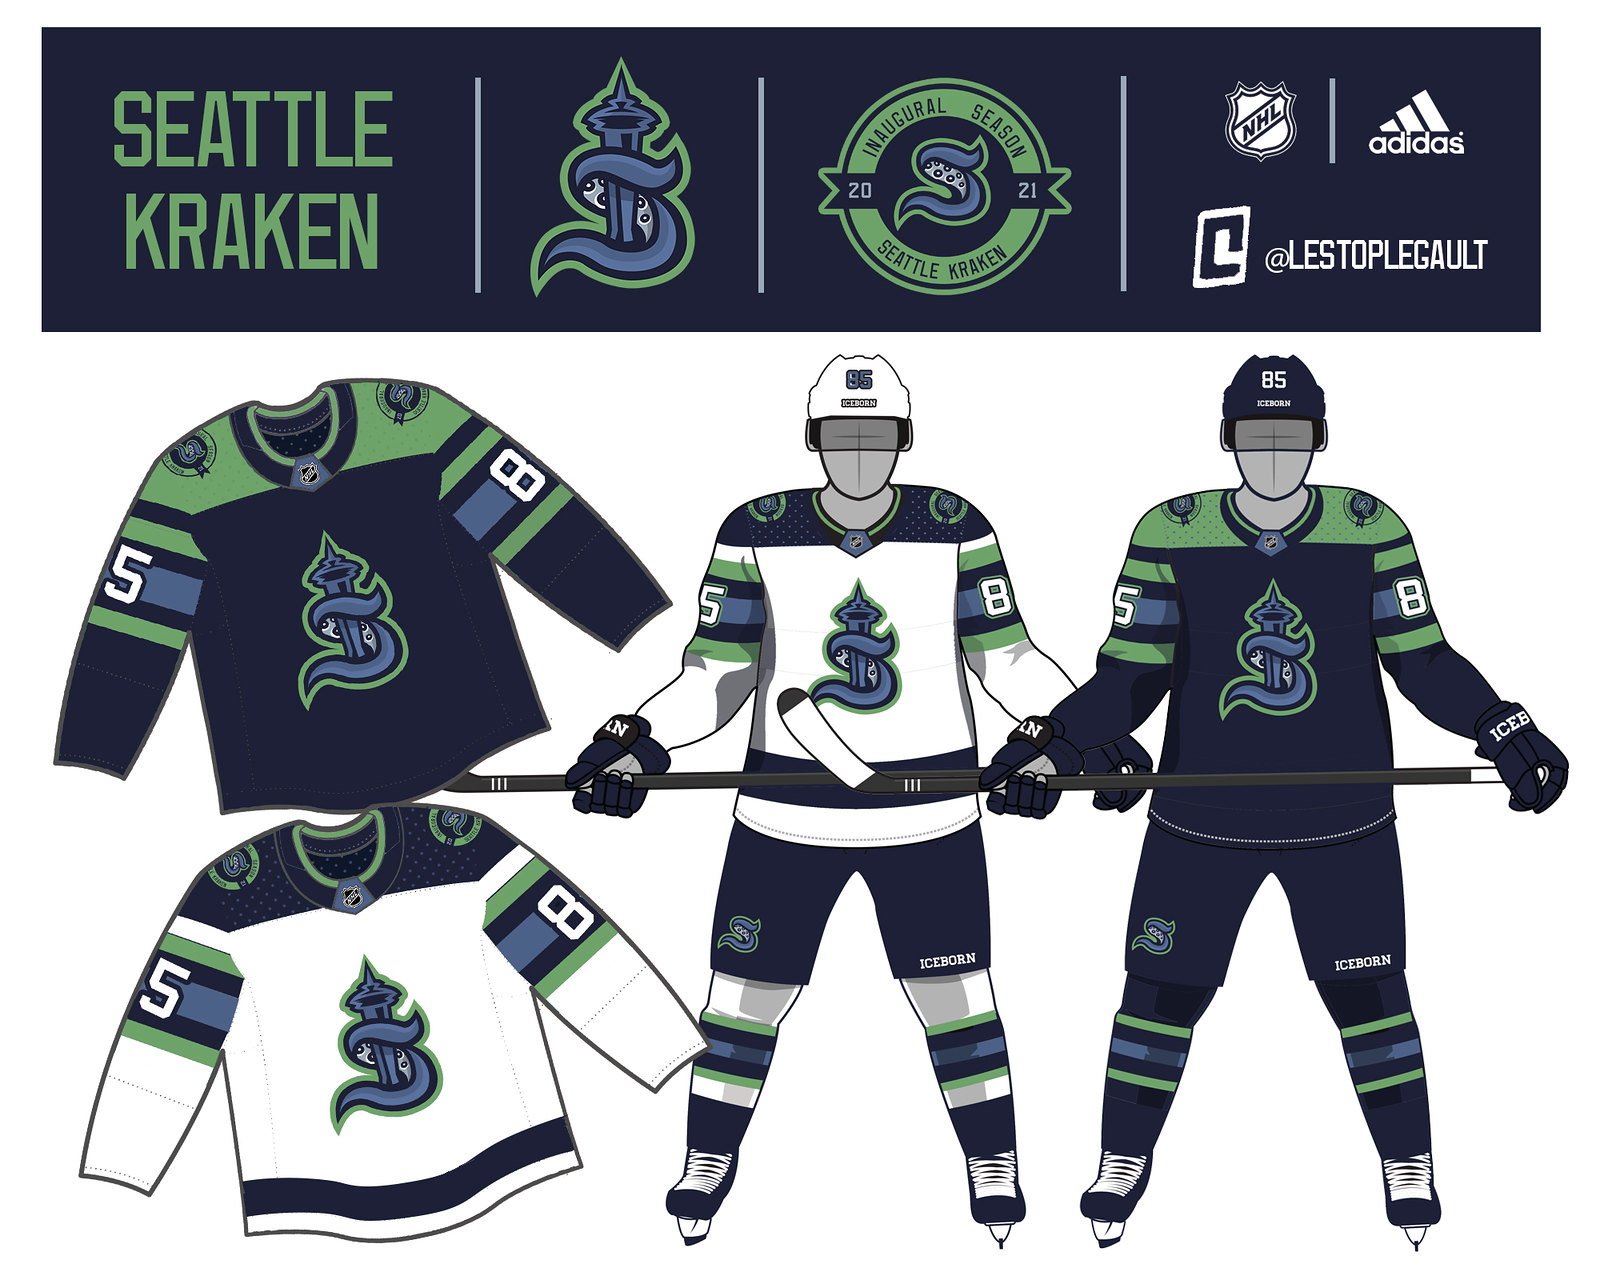 c82e54ccb02 Uni Watch delivers the winning entries for the Seattle NHL design ...